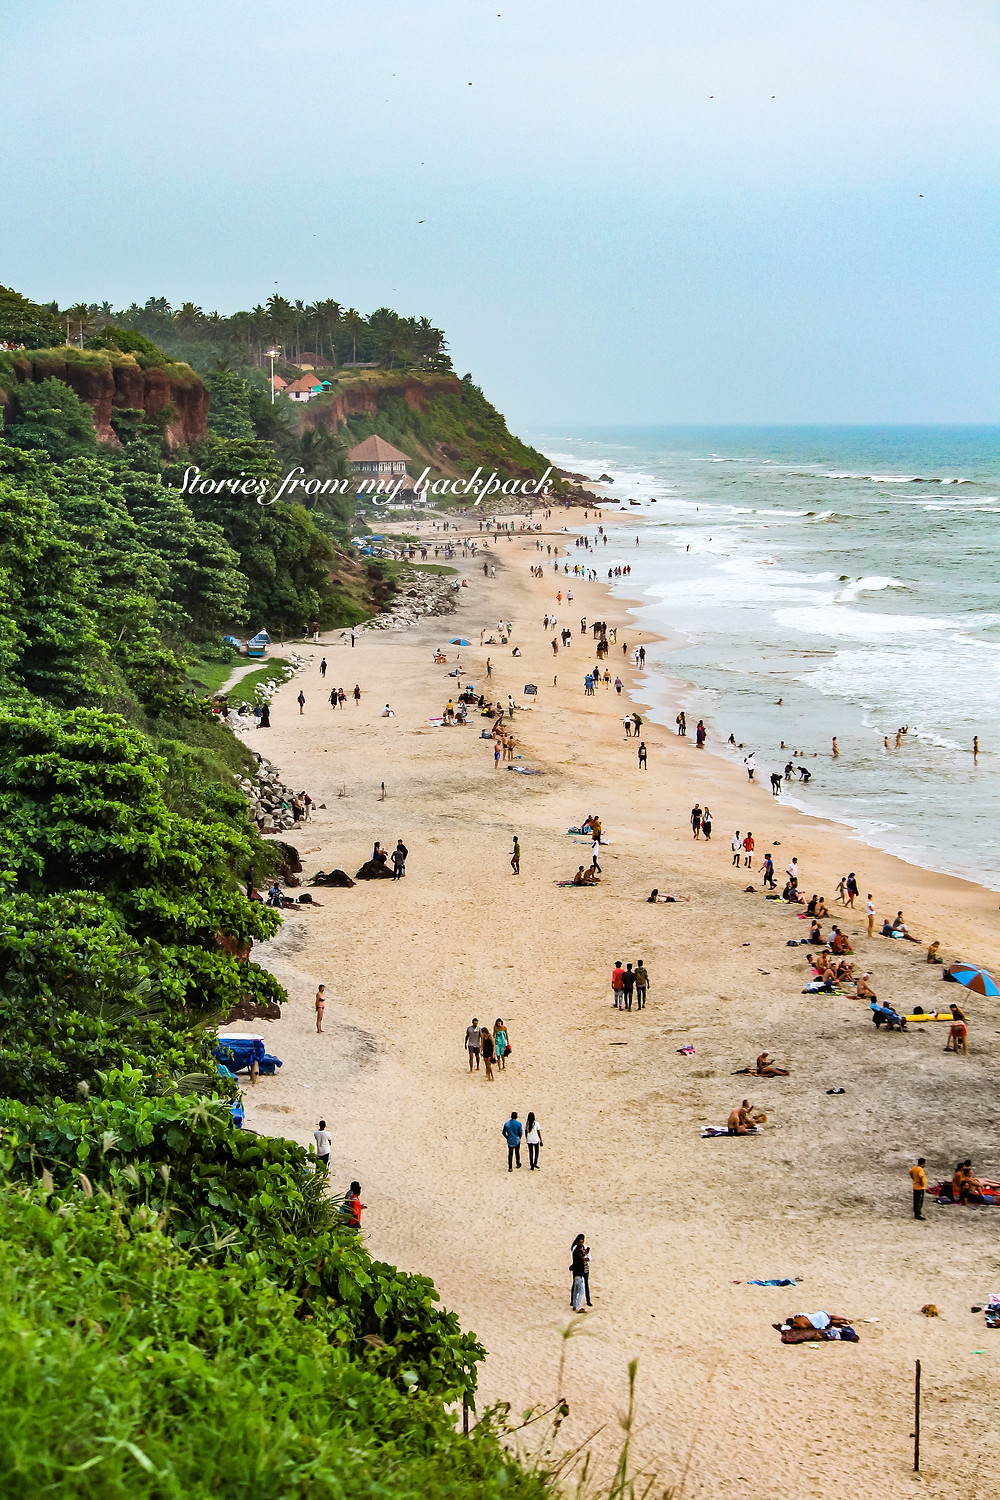 varkala cliff, varkala helipad, varkala things to do, varkala yoga, soul and surf, varkala restaurants, varkala resorts